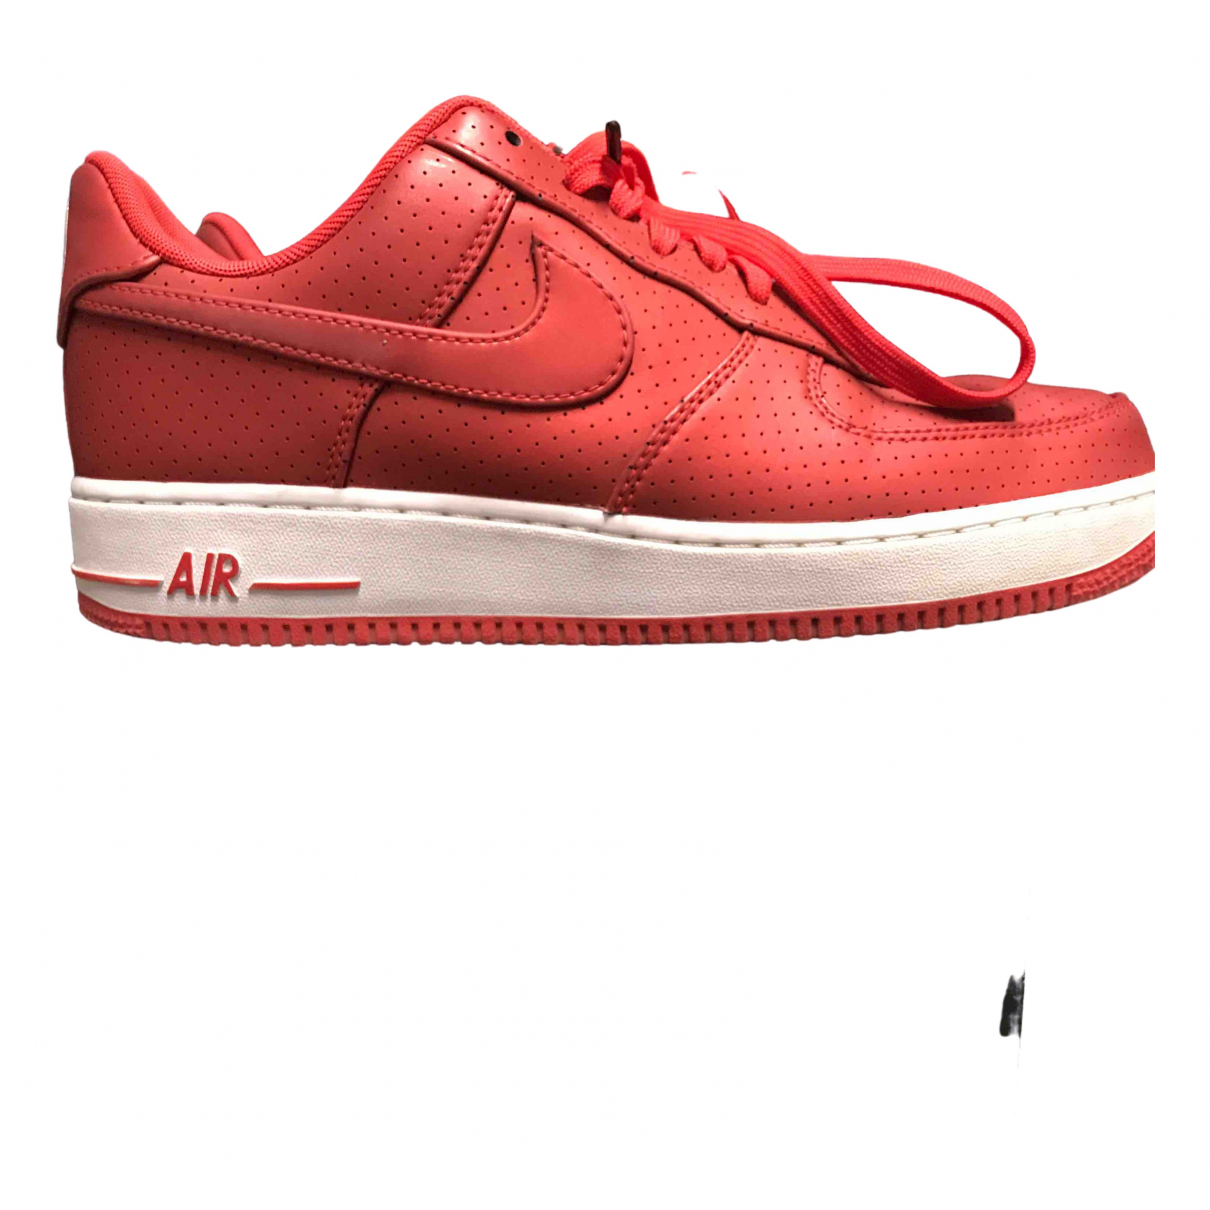 Nike - Baskets Air Force 1 pour homme - rouge